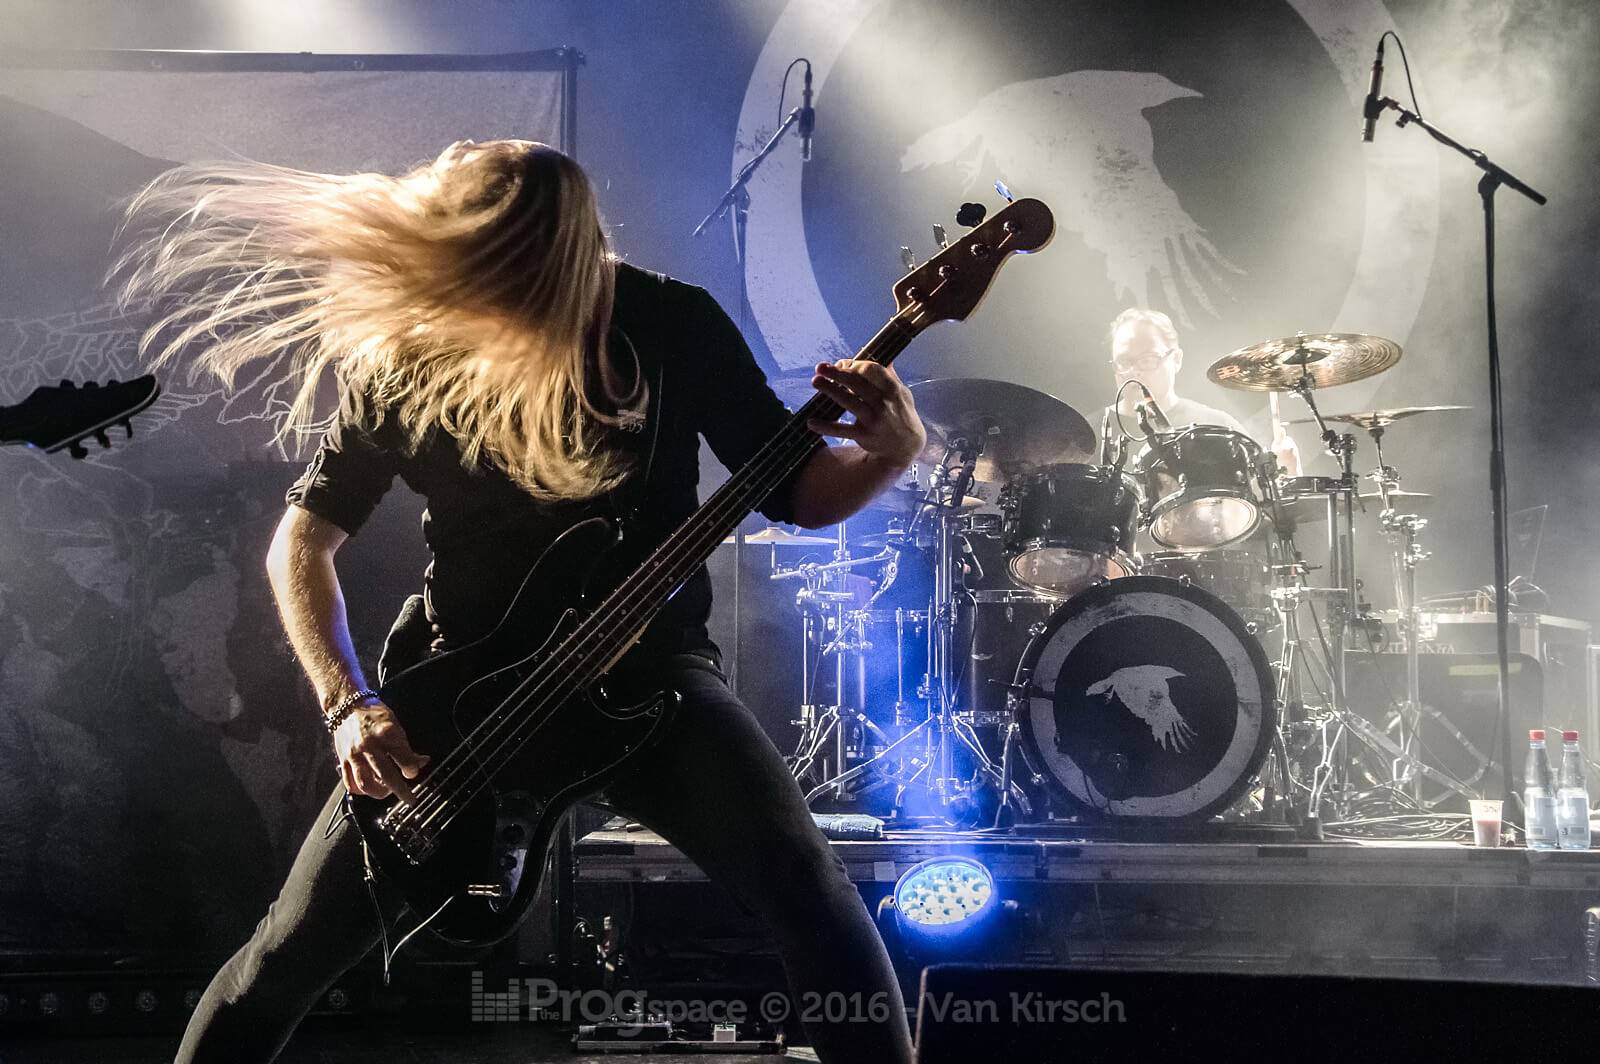 Fallen Hearts of Europe 2016: Katatonia with Vola and Agent Fresco at Markthalle, Hamburg.